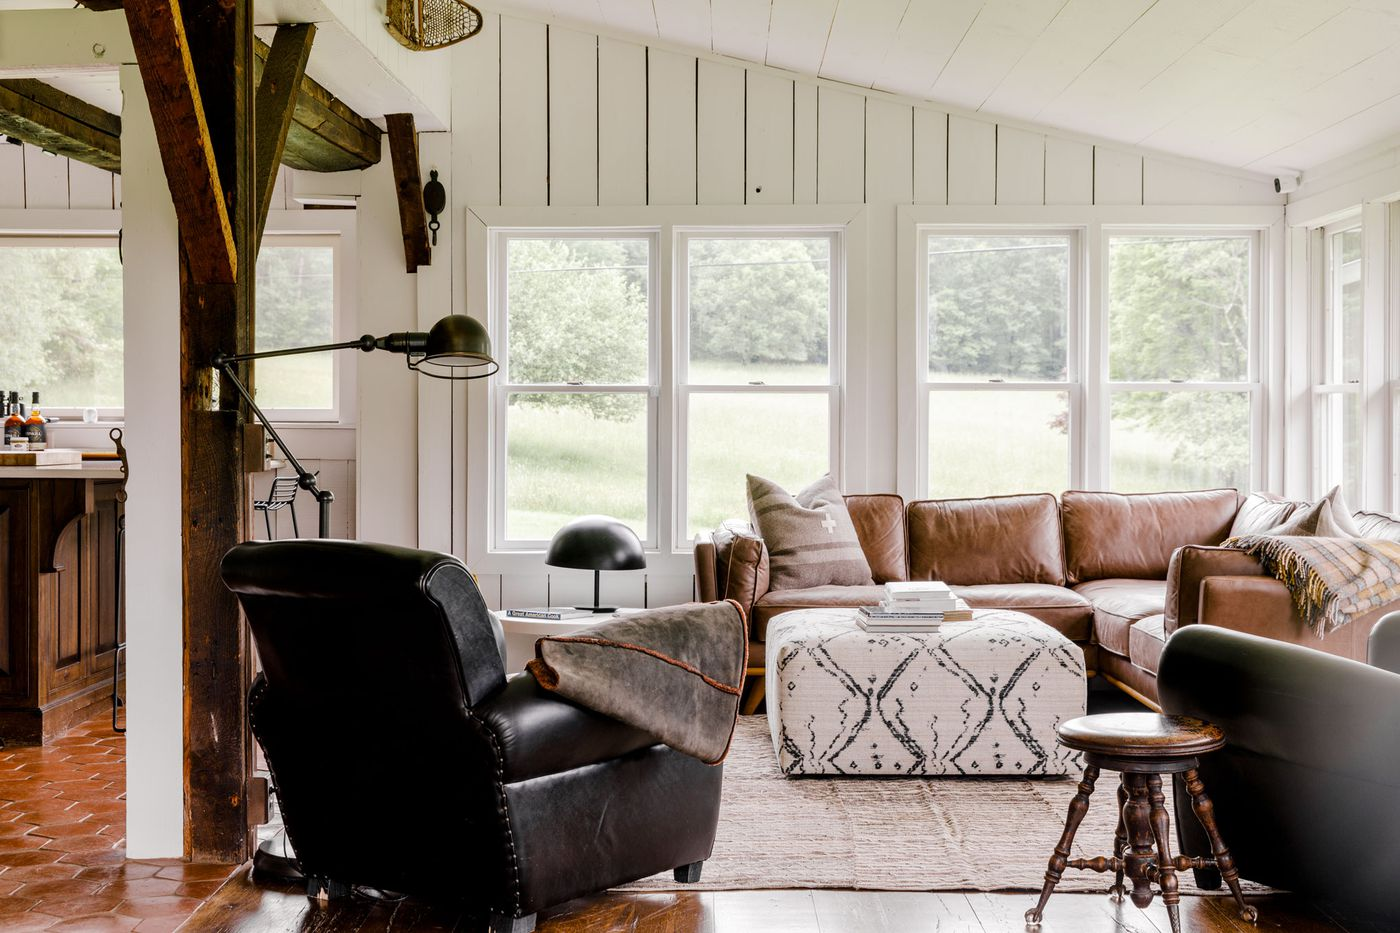 Living room ideas: Furniture and decor inspiration to shop ...